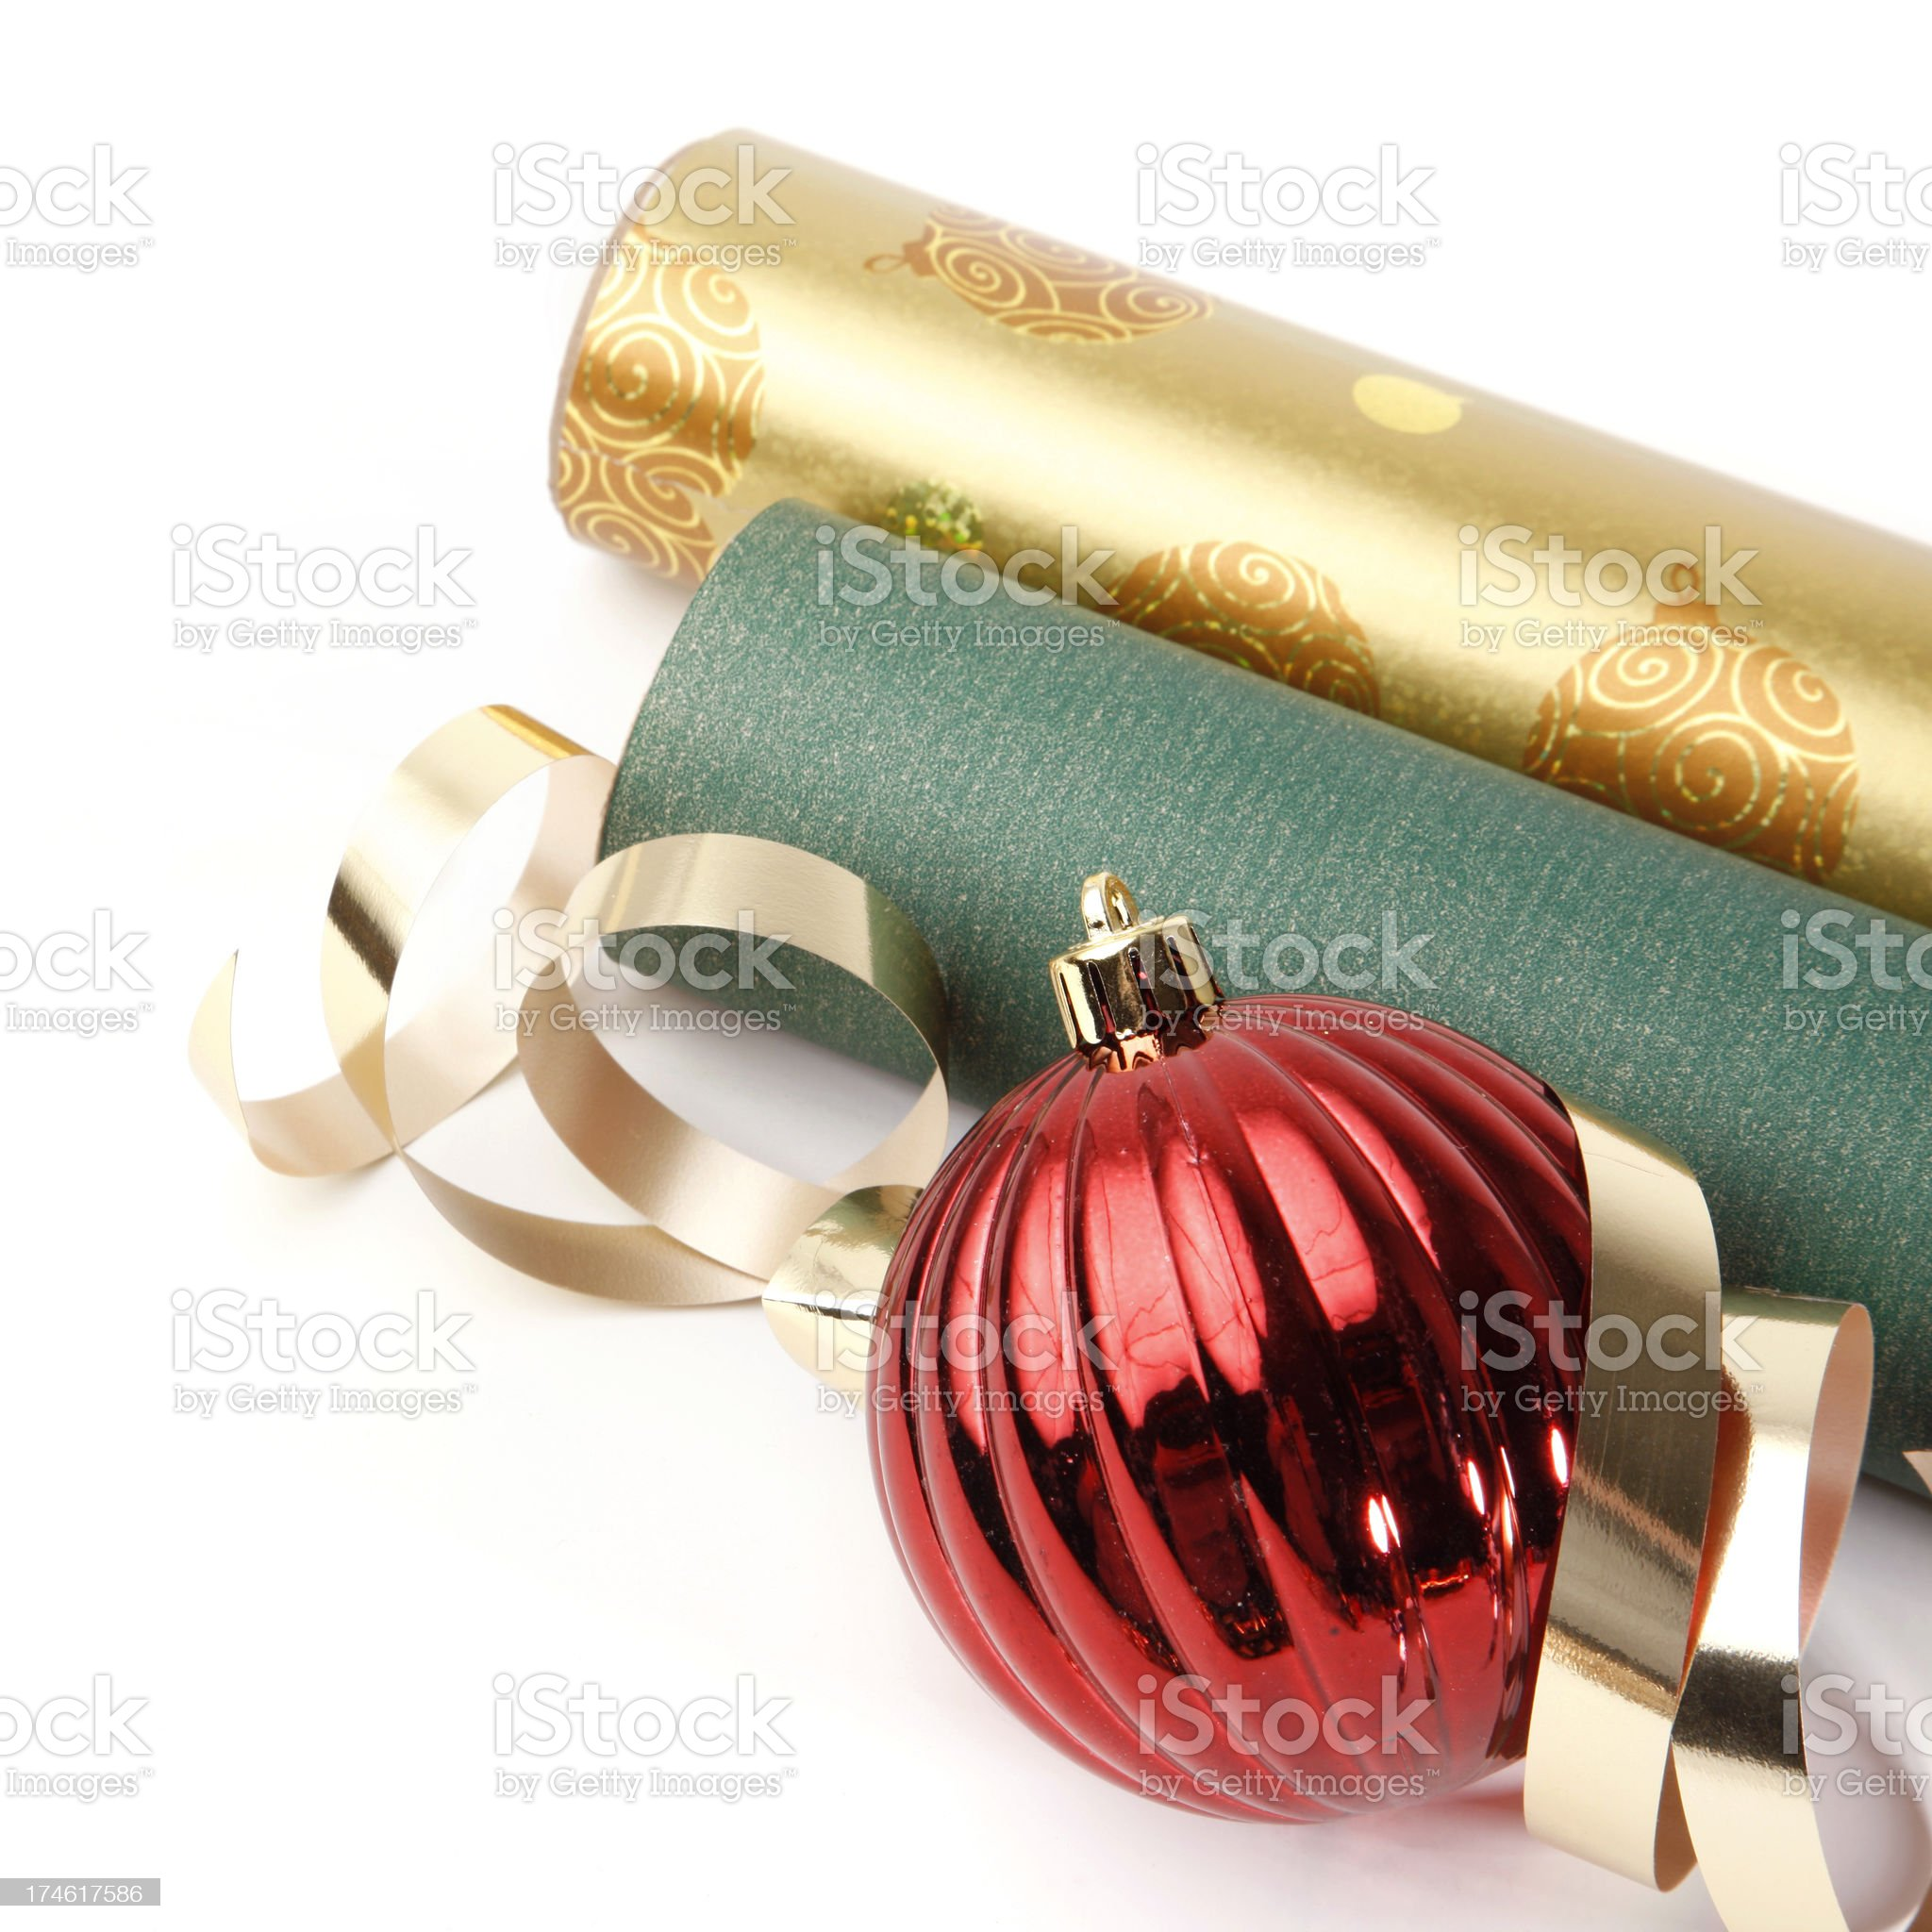 Christmas Gift Paper and Ornament royalty-free stock photo